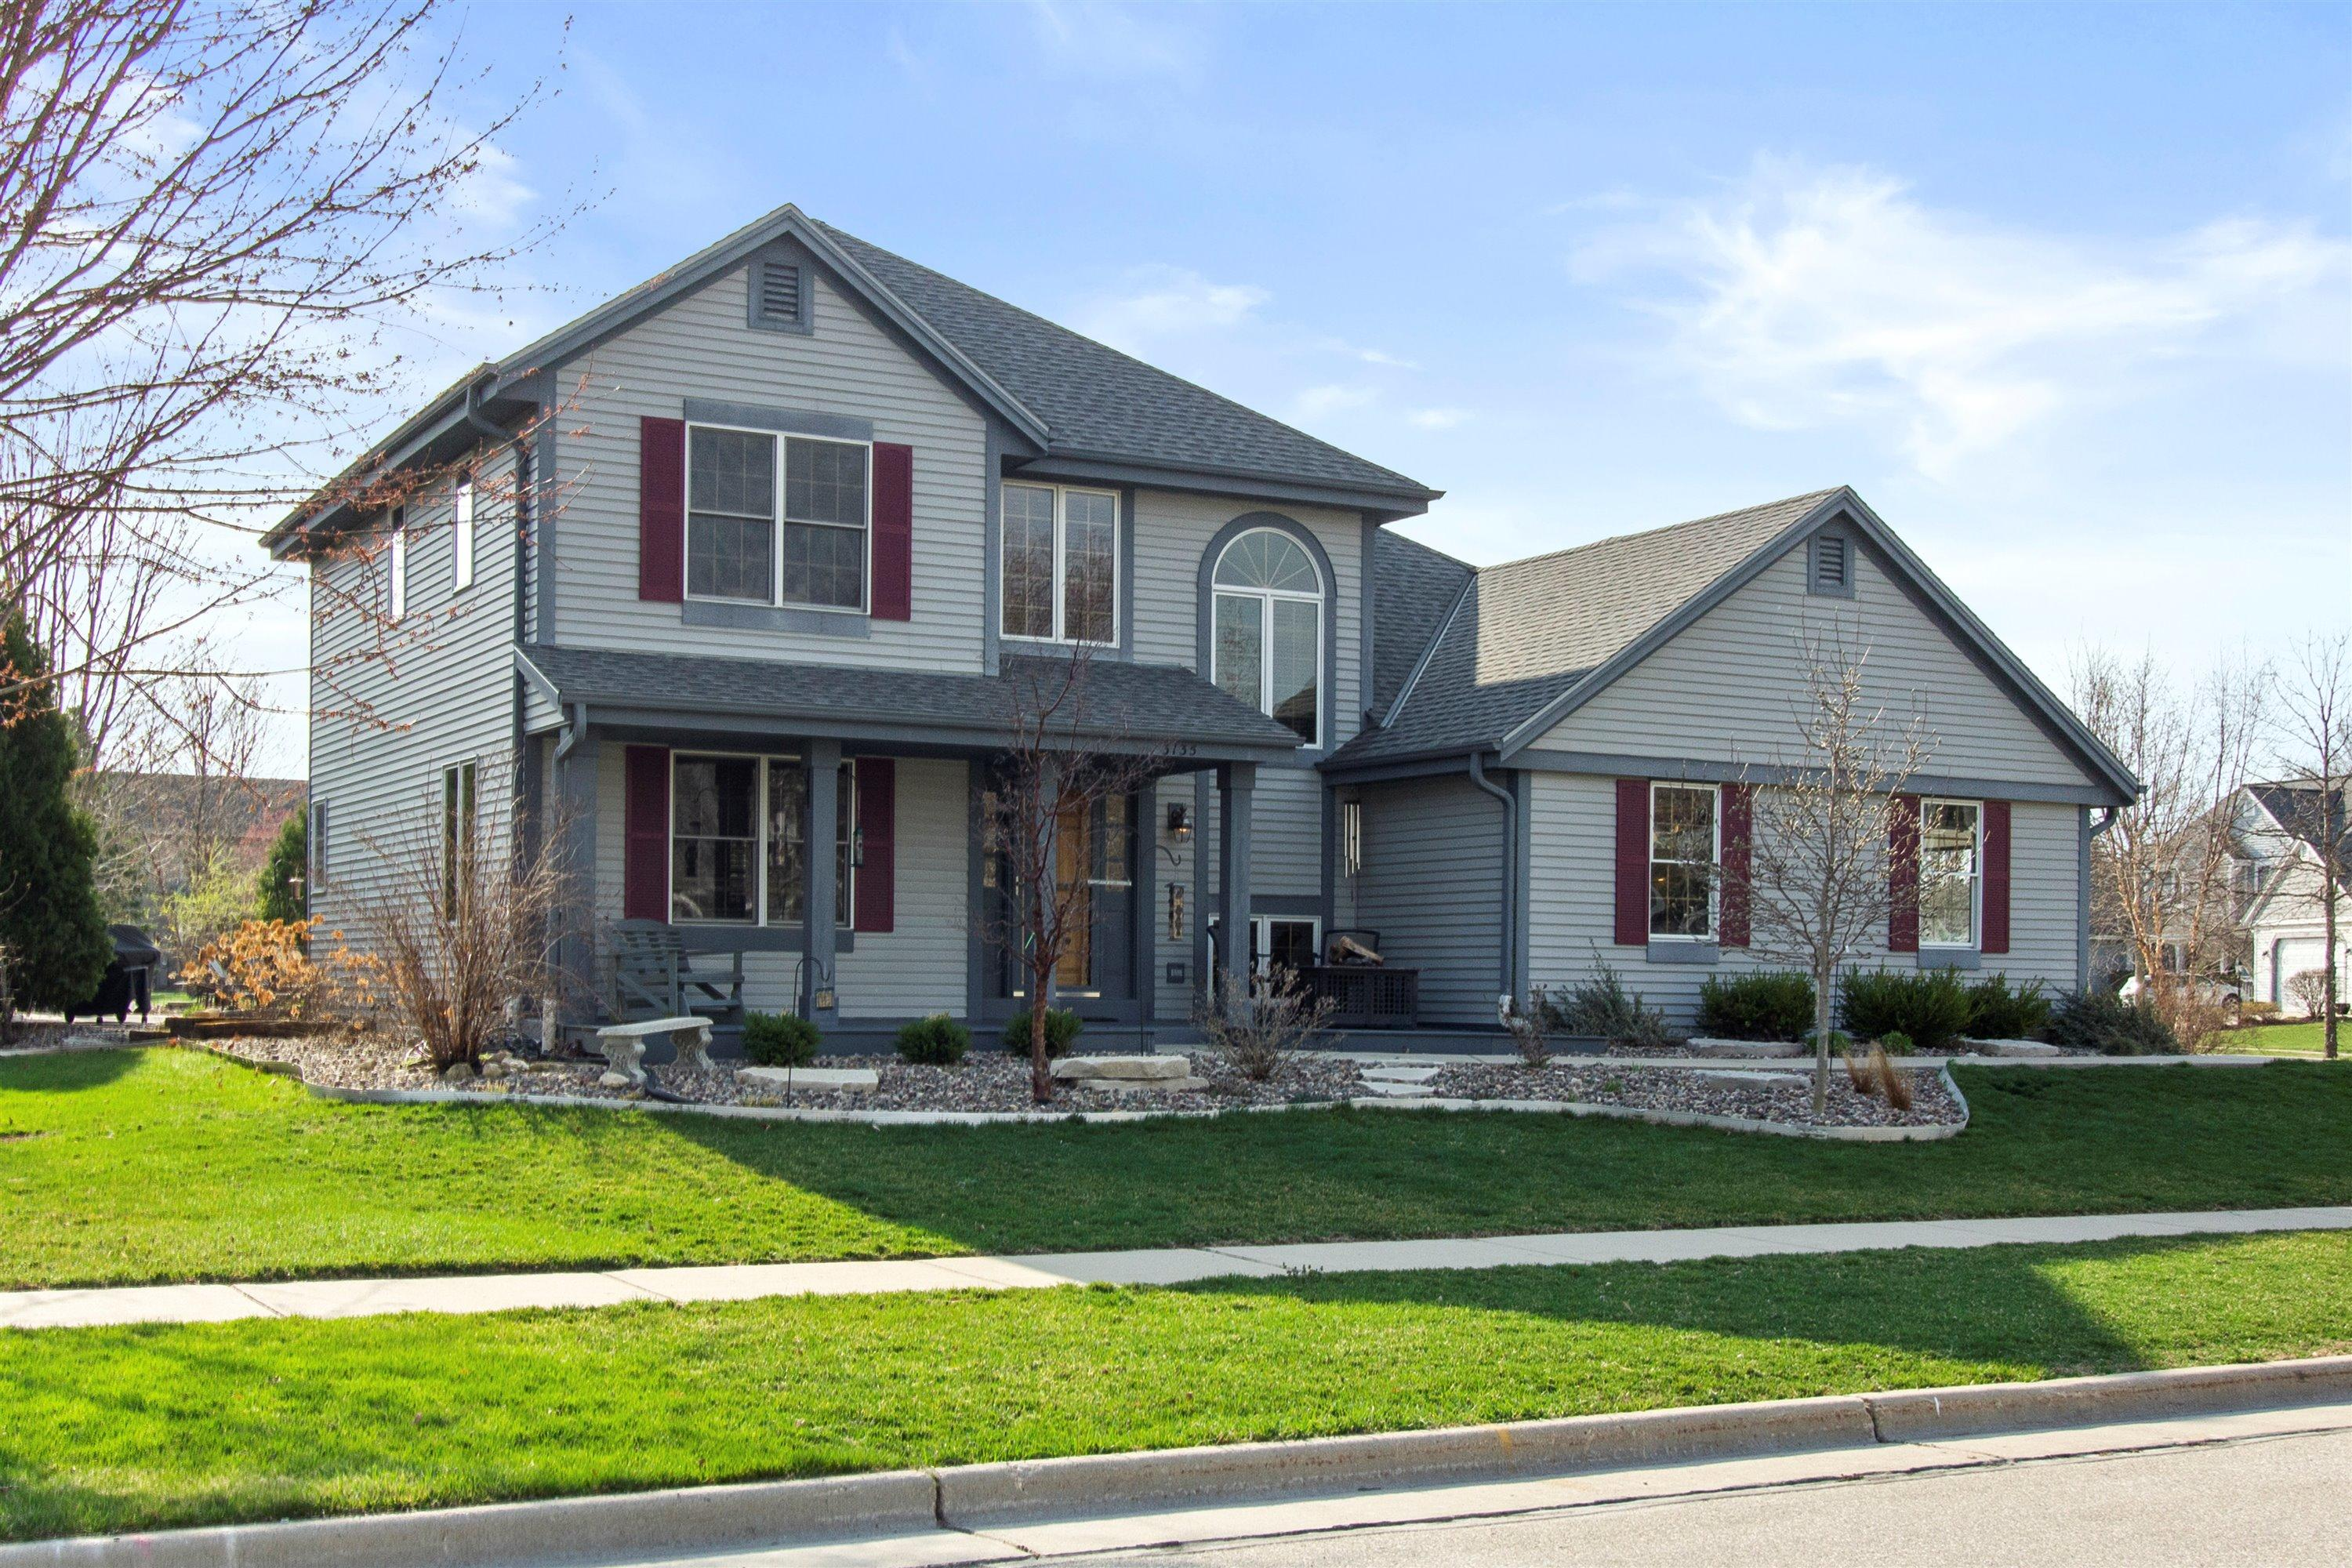 Photo of 3135 River Valley, Waukesha, WI 53189